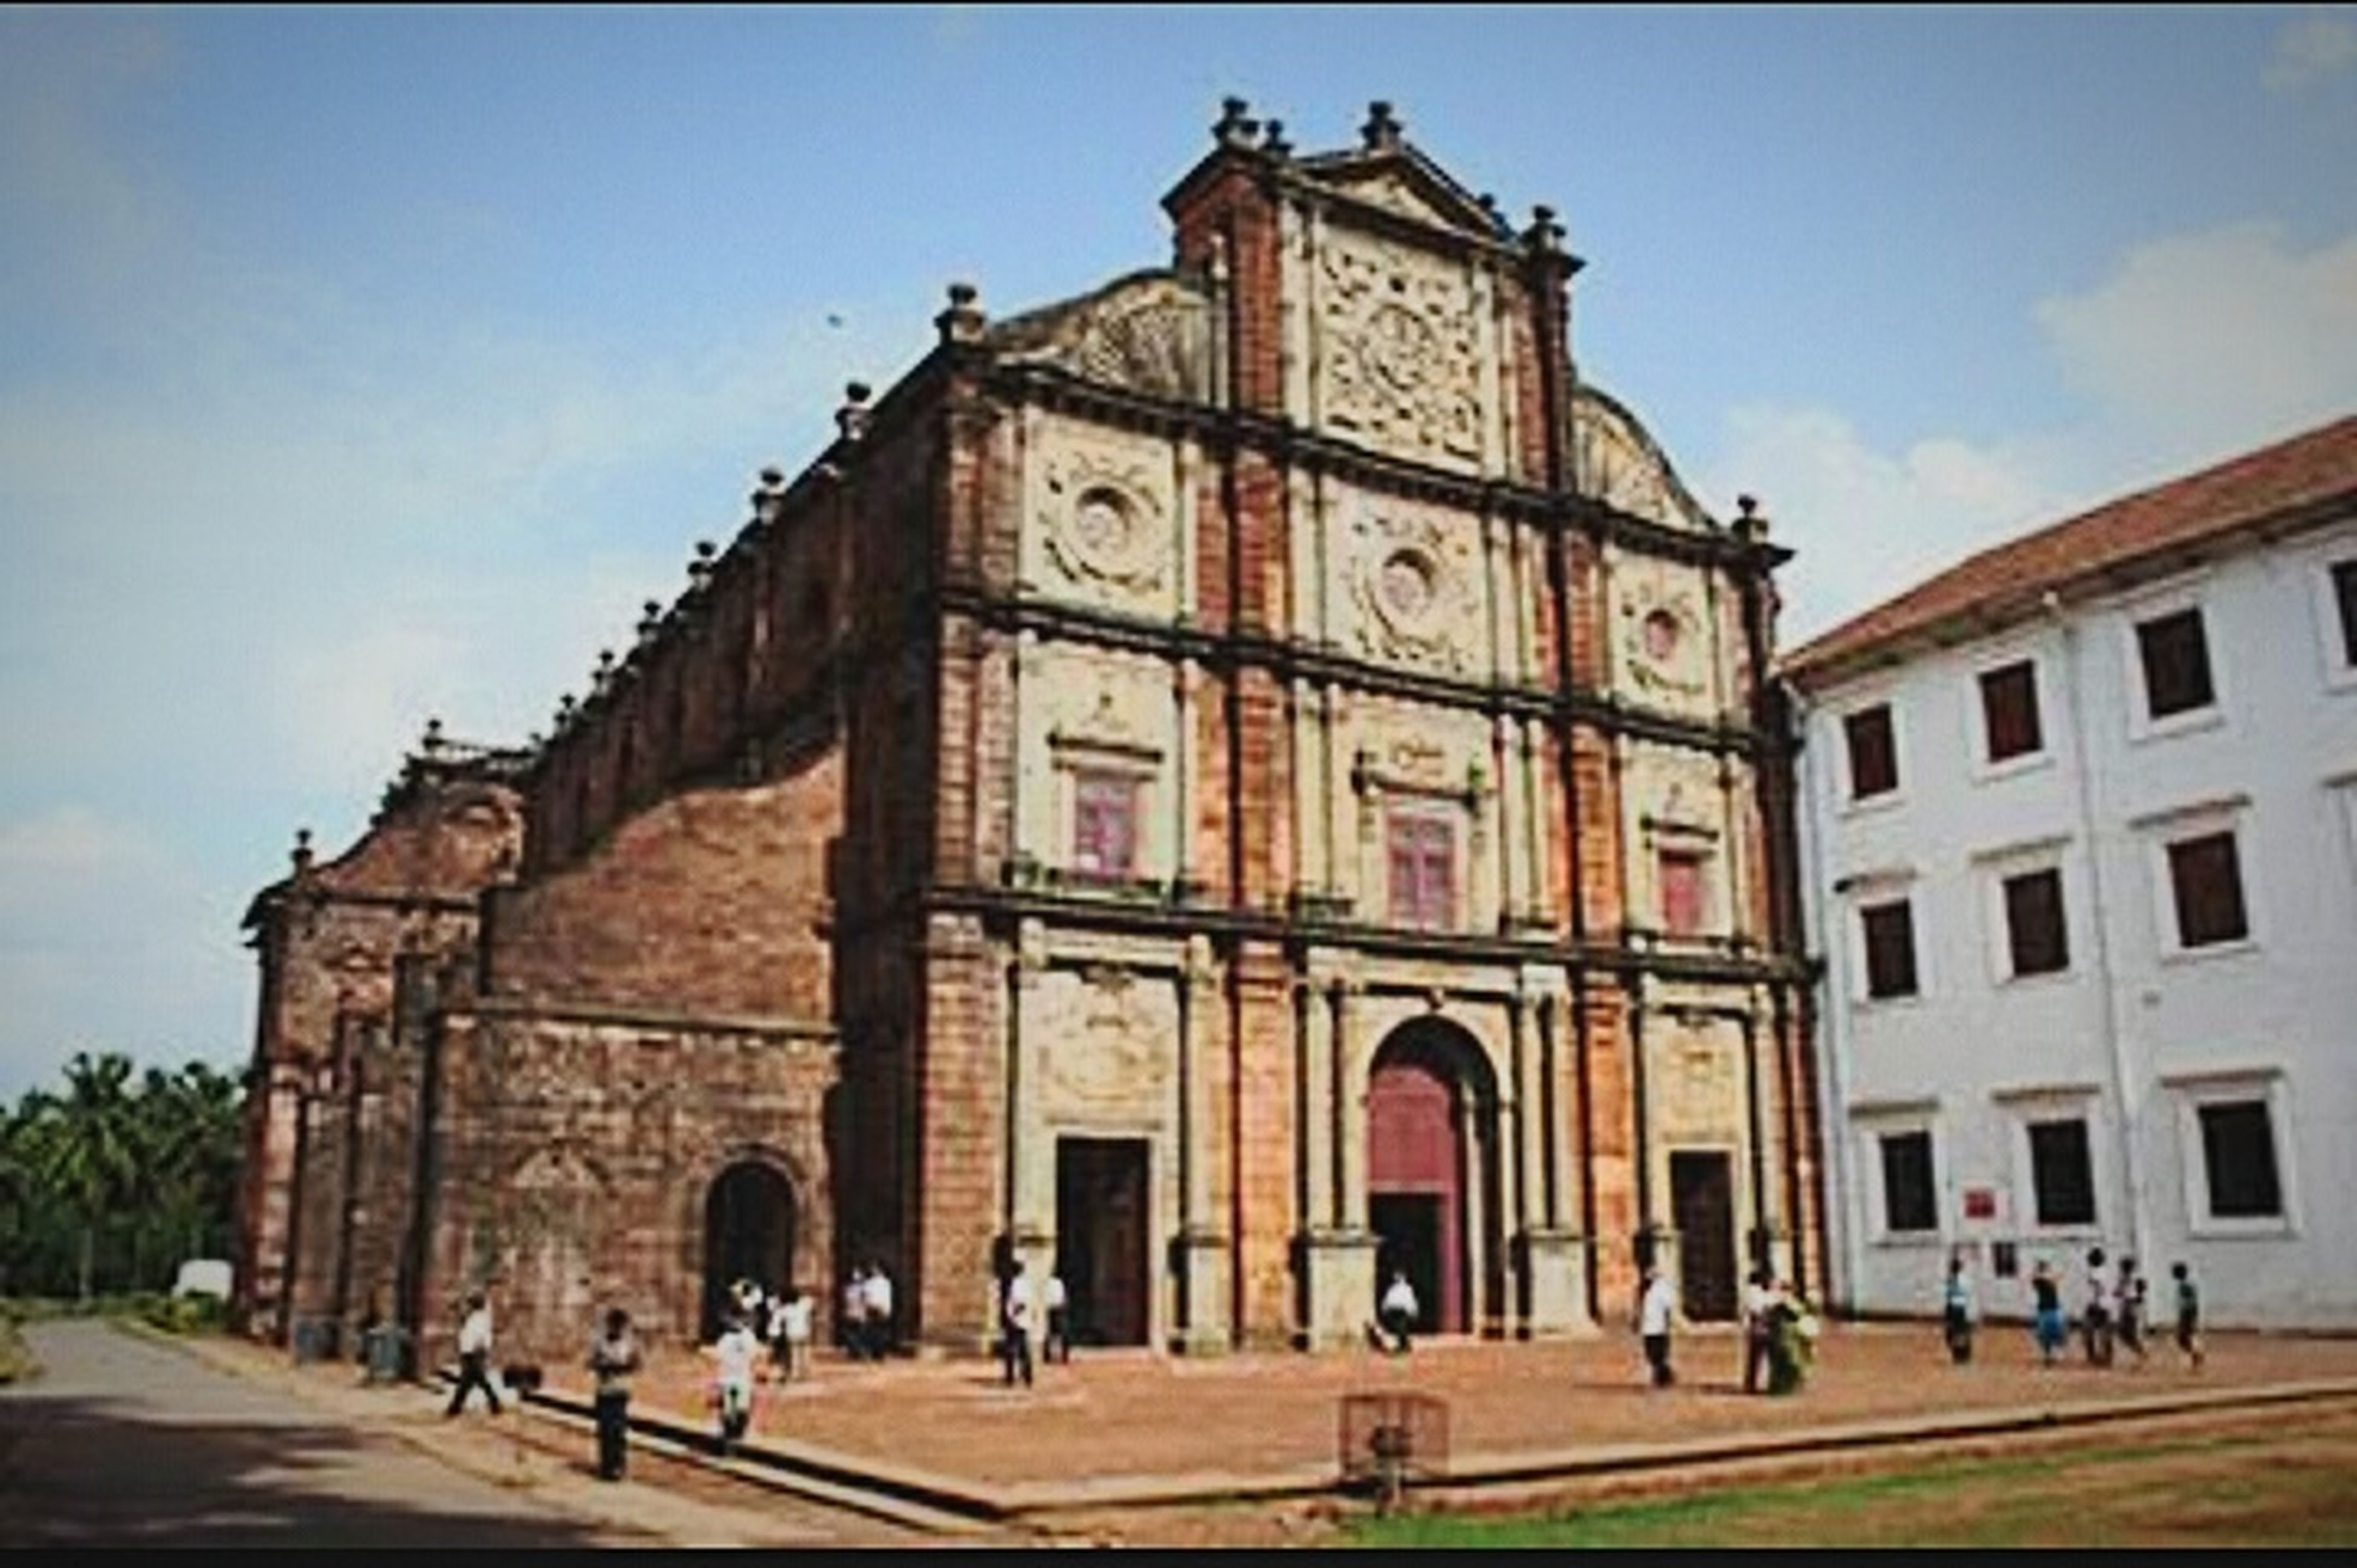 Bomb Basilisk Church. Travel Destinations Architecture Religion Low Angle View History Place Of Worship